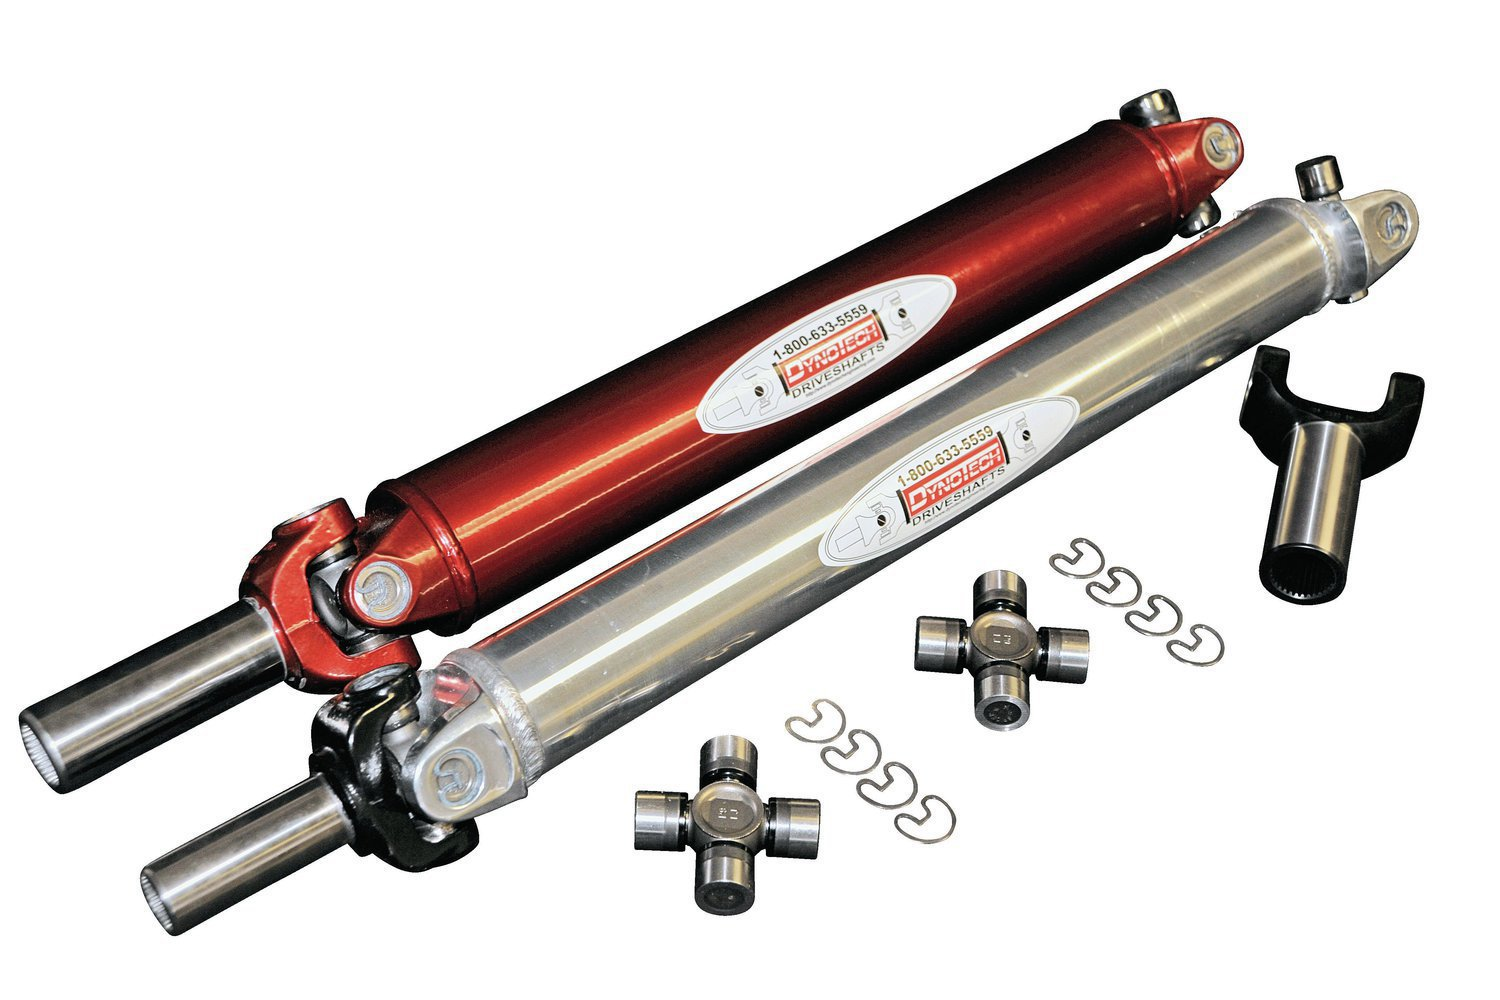 A race quality driveshaft is not only stronger than a typical OEM shaft, but also balanced much more precisely because the very high rpm levels a race car sees can greatly magnify the effects of any vibration.